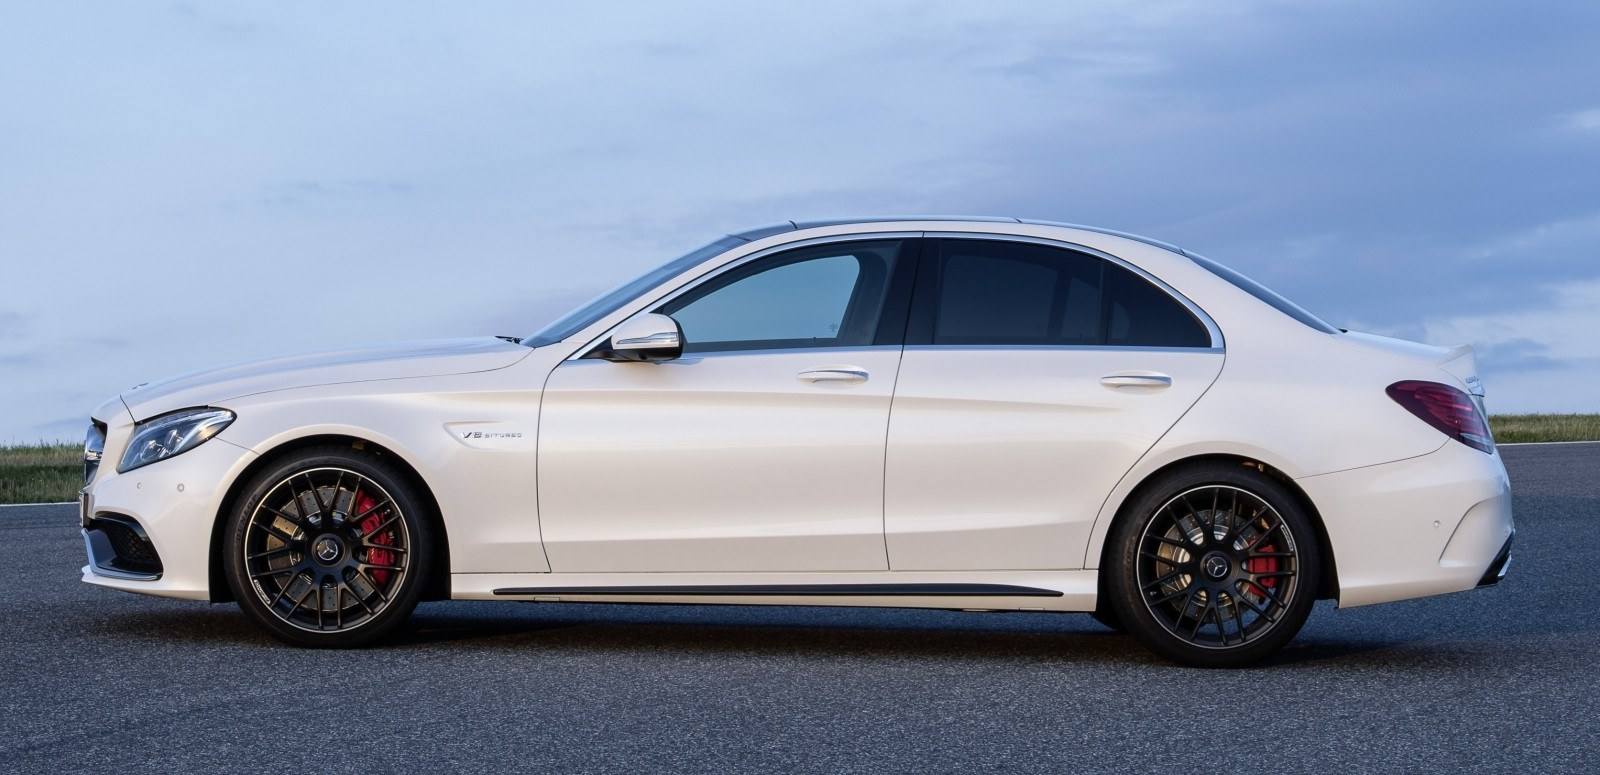 510hp 2015 mercedes amg c63 s joings new c63 without the benz name 6. Black Bedroom Furniture Sets. Home Design Ideas